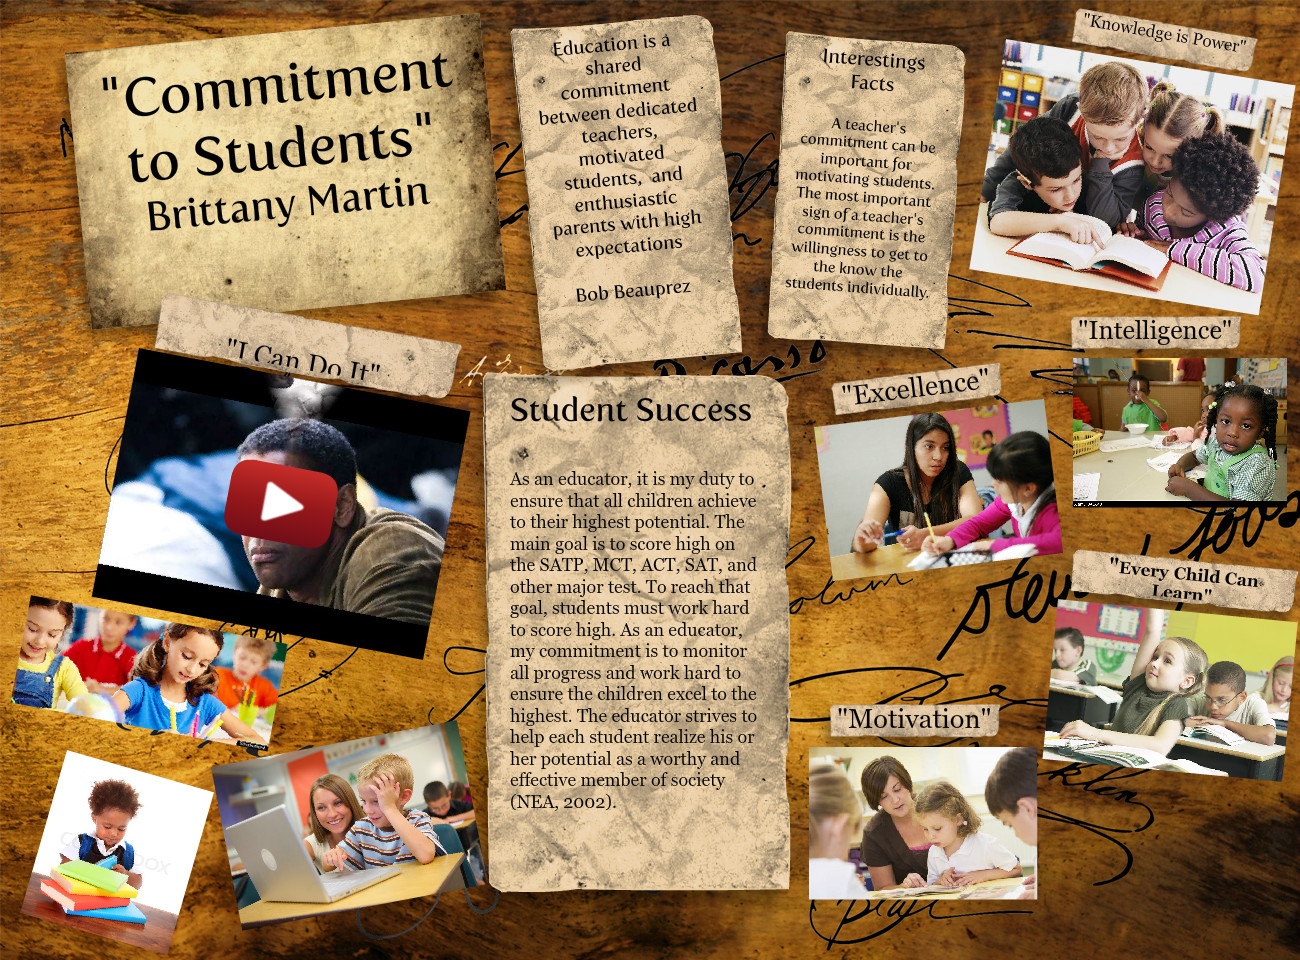 Commitment to Students